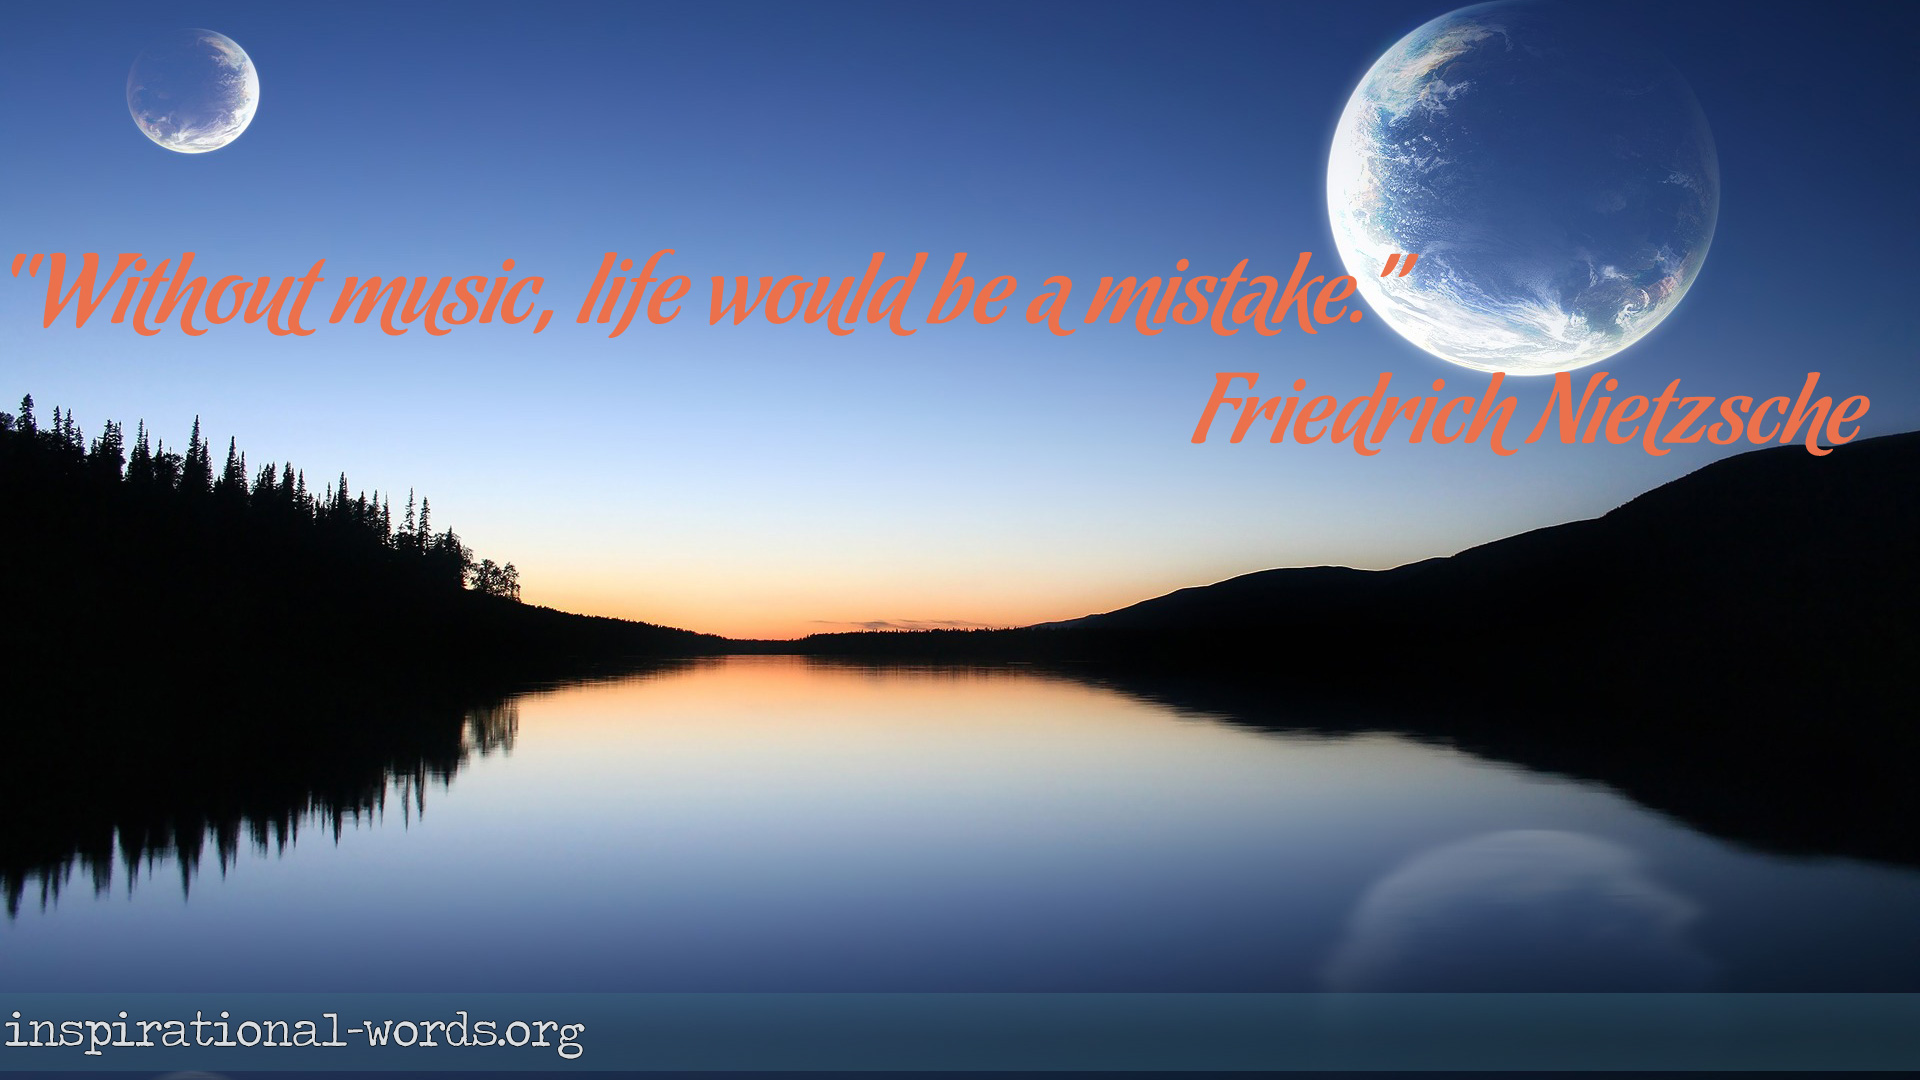 Inspirational Wallpaper Quote by Friedrich Nietzsche